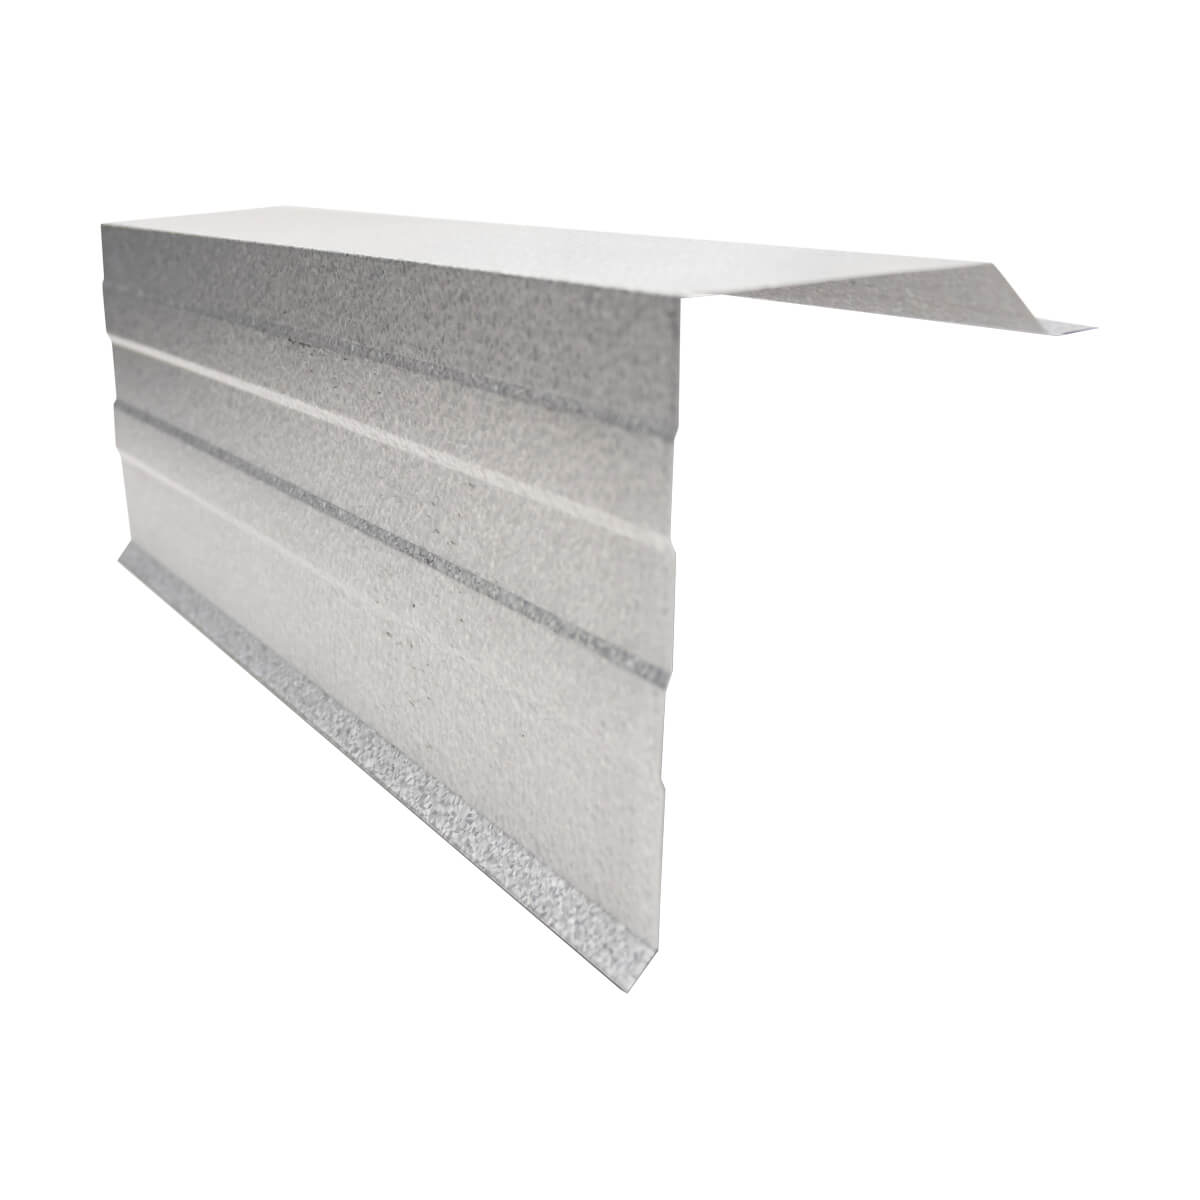 Gable Trim S - 10' - 29GA - Galvalume